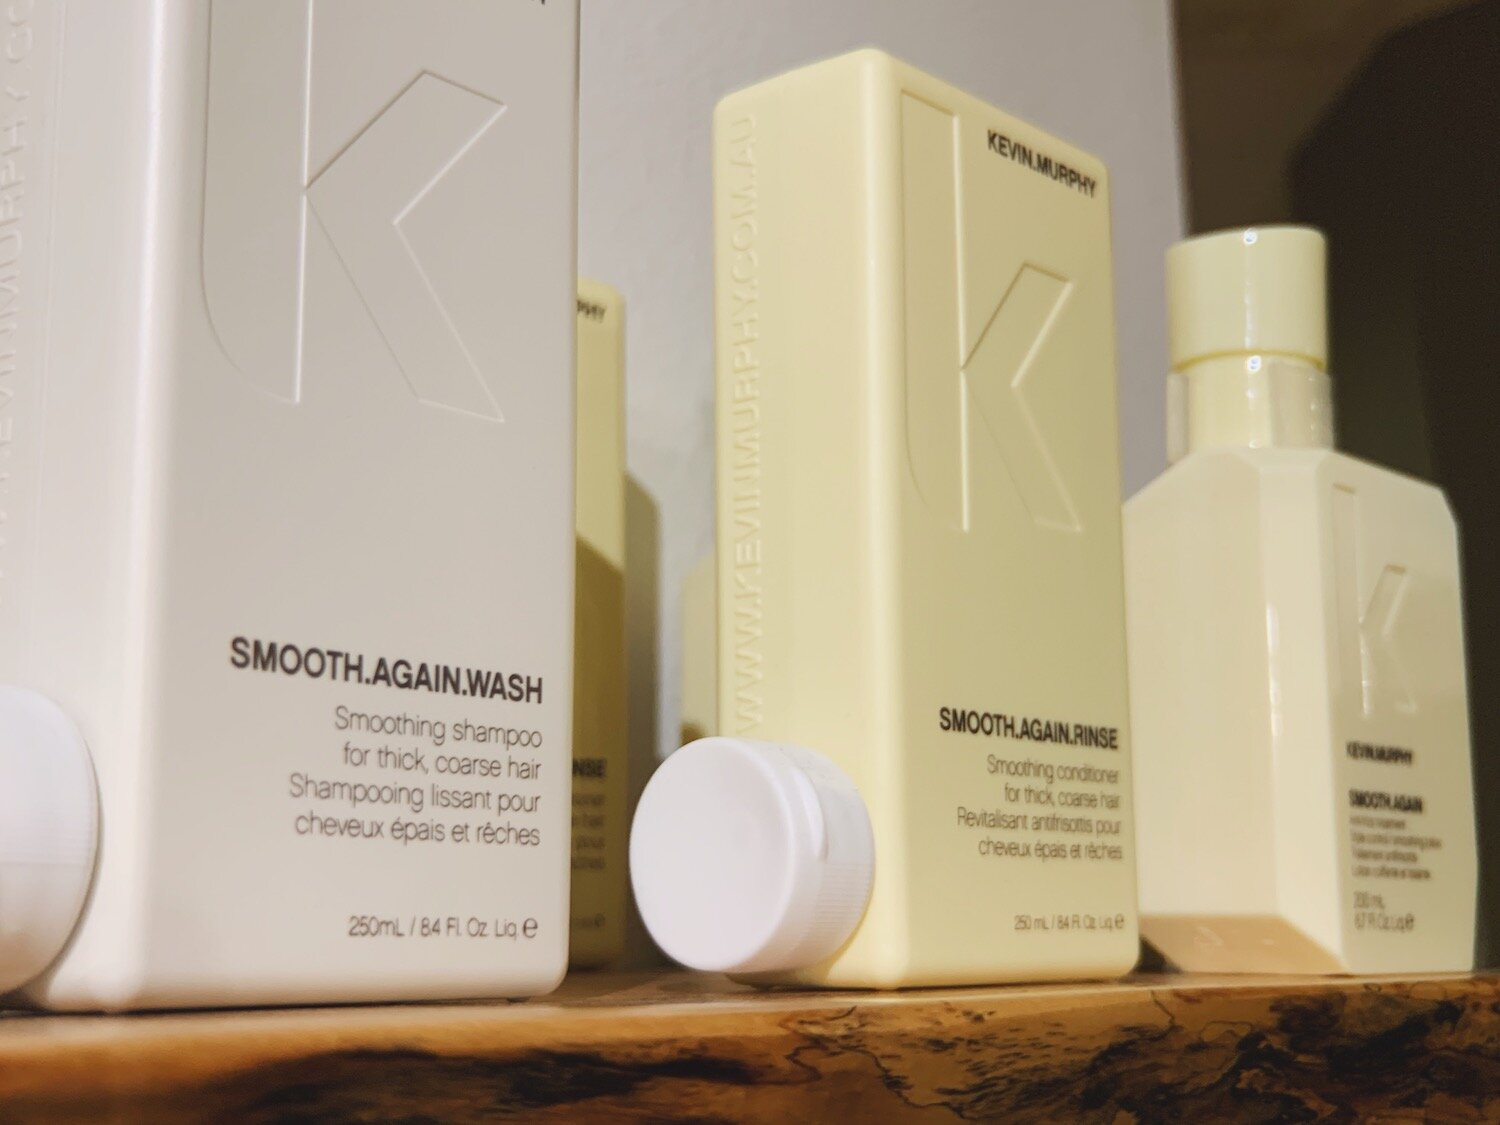 l15salon-kevin-murphy-smooth.jpg